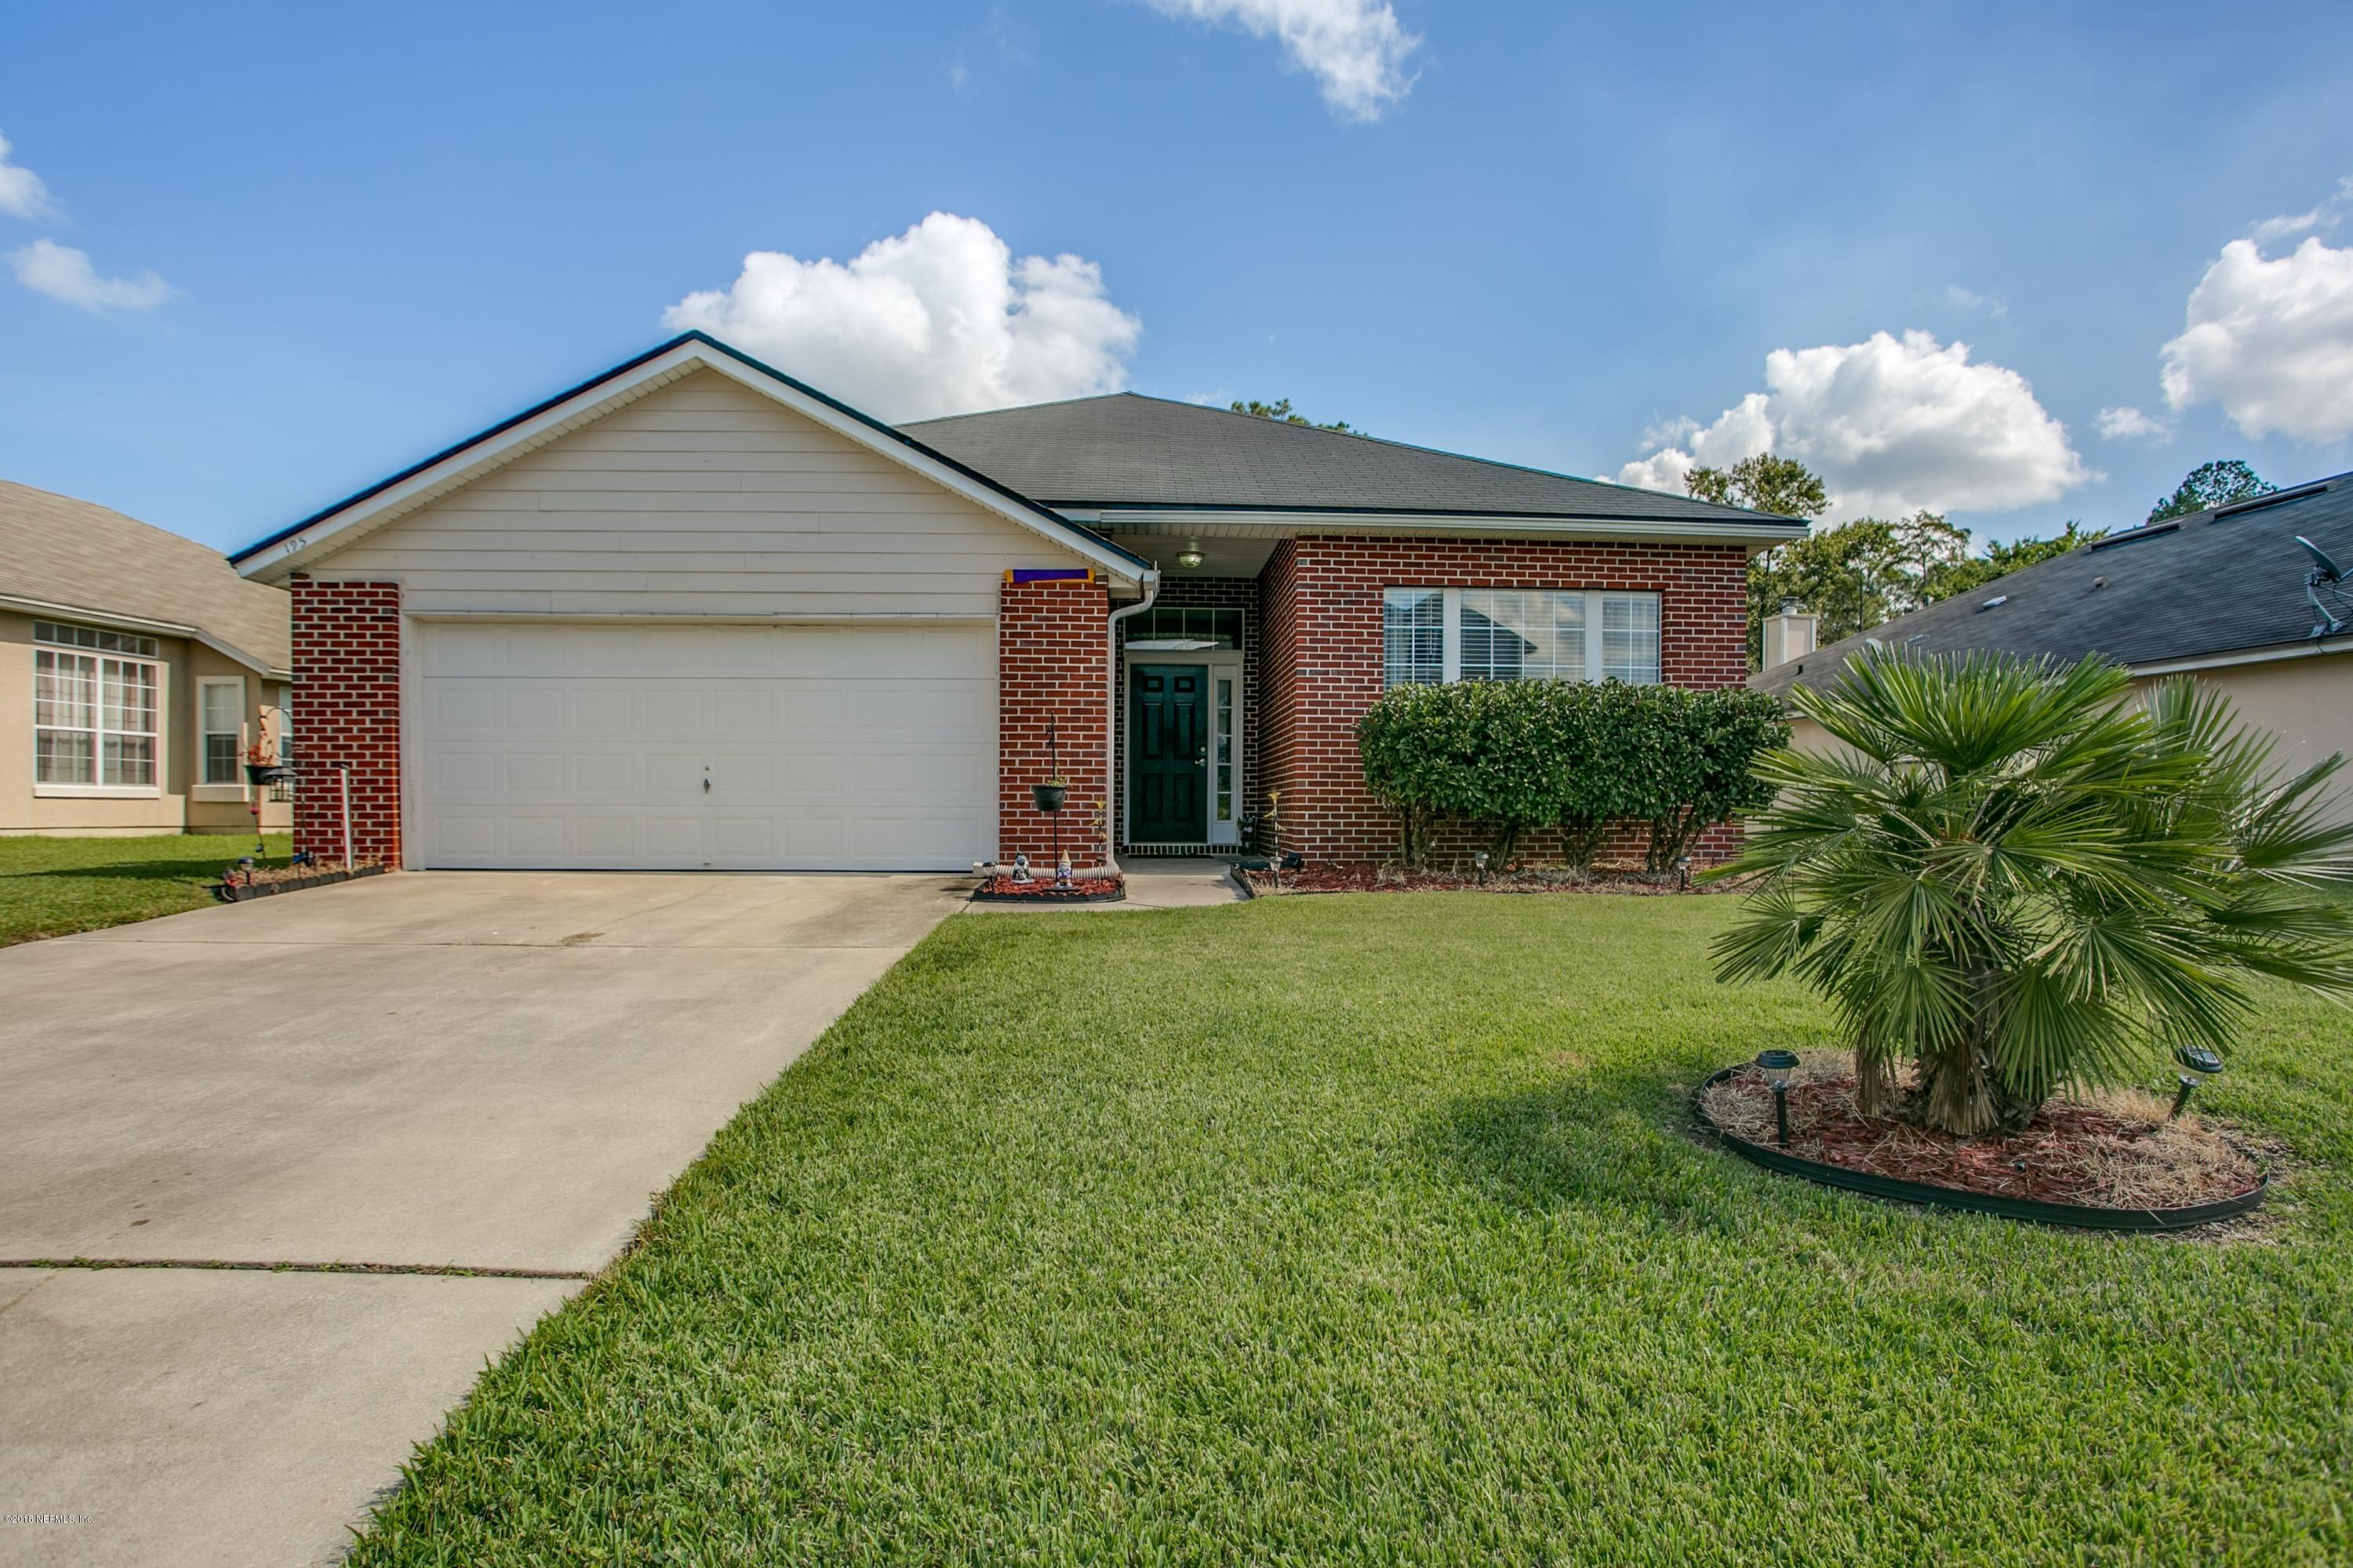 195 DOVER BLUFF, ORANGE PARK, FLORIDA 32073, 3 Bedrooms Bedrooms, ,2 BathroomsBathrooms,Residential - single family,For sale,DOVER BLUFF,964542